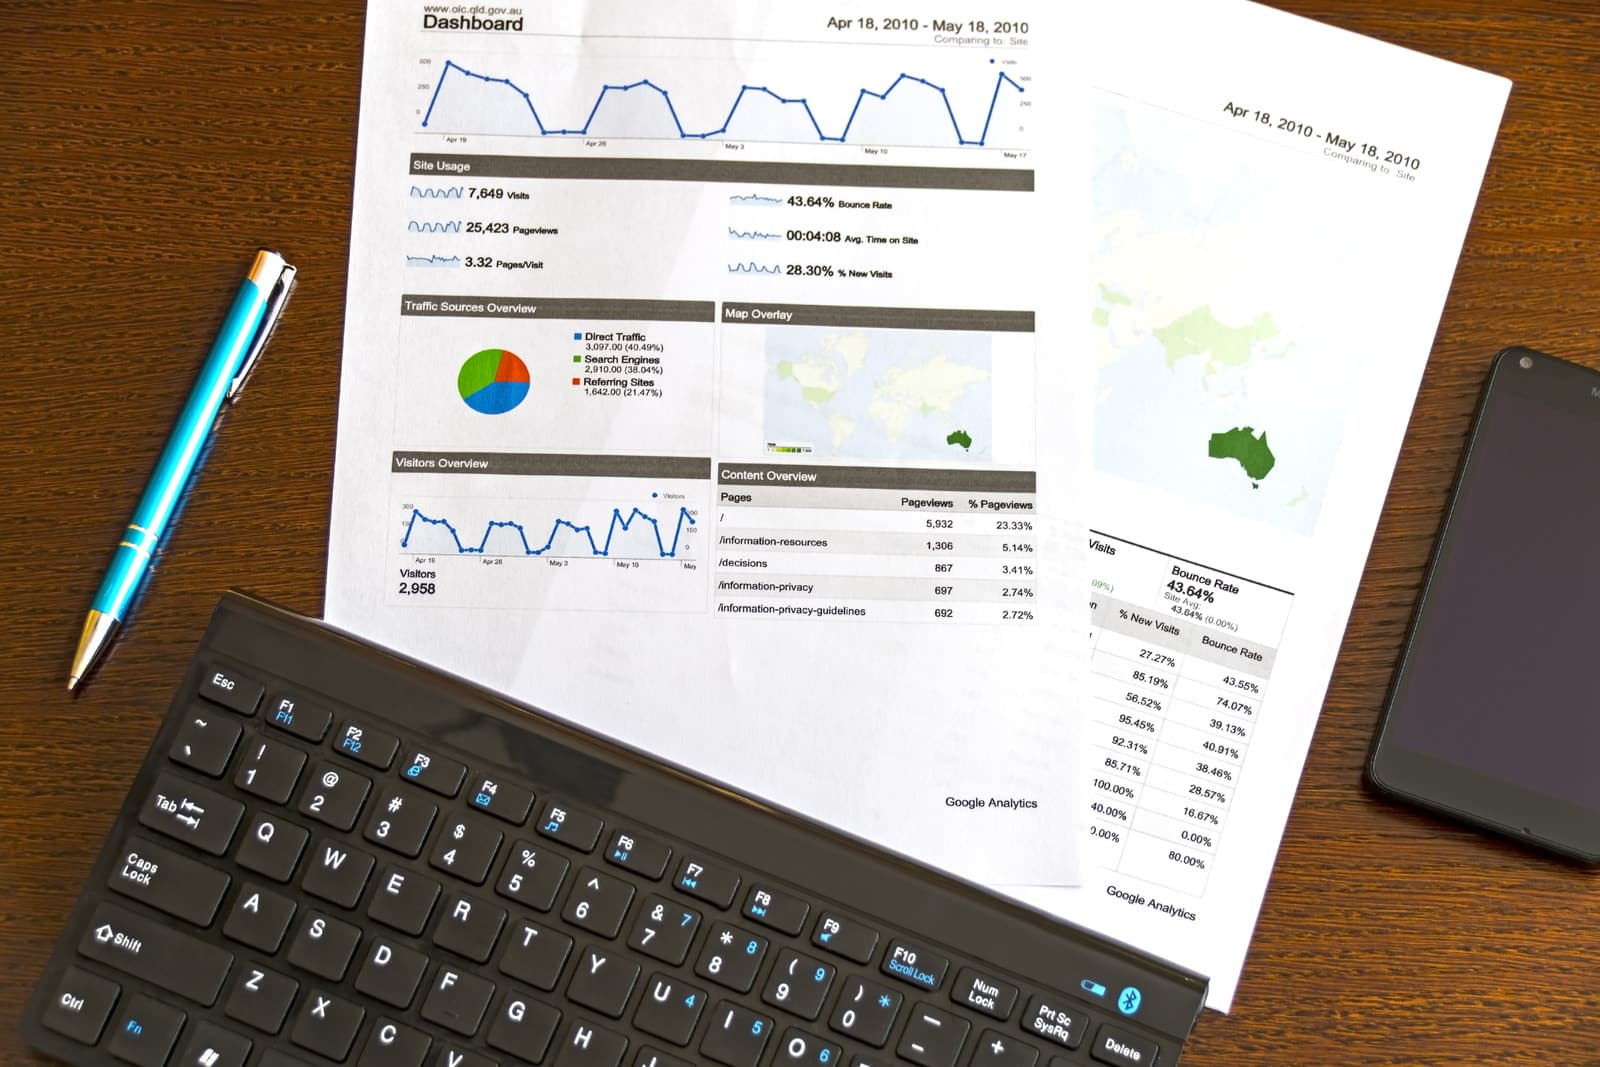 We will work with you on your search engine optimization campaign